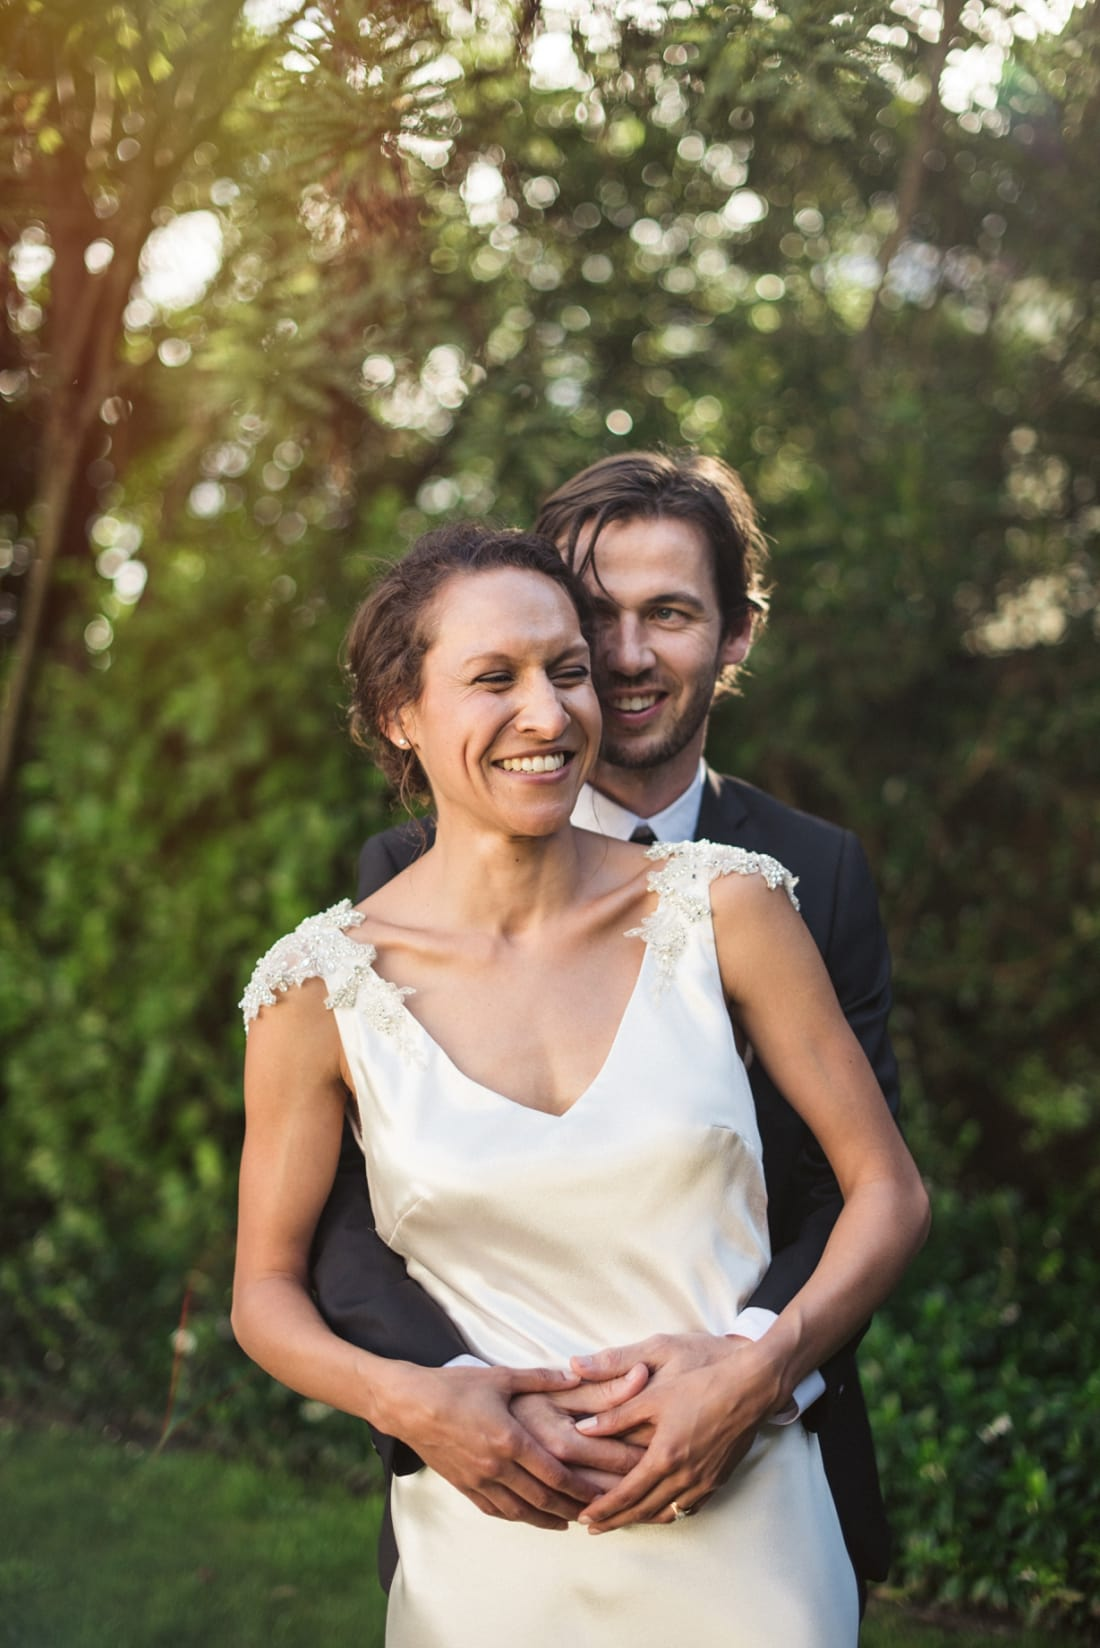 Michael & Ni'ia, Hawkes Bay Wedding | meredithlord.com